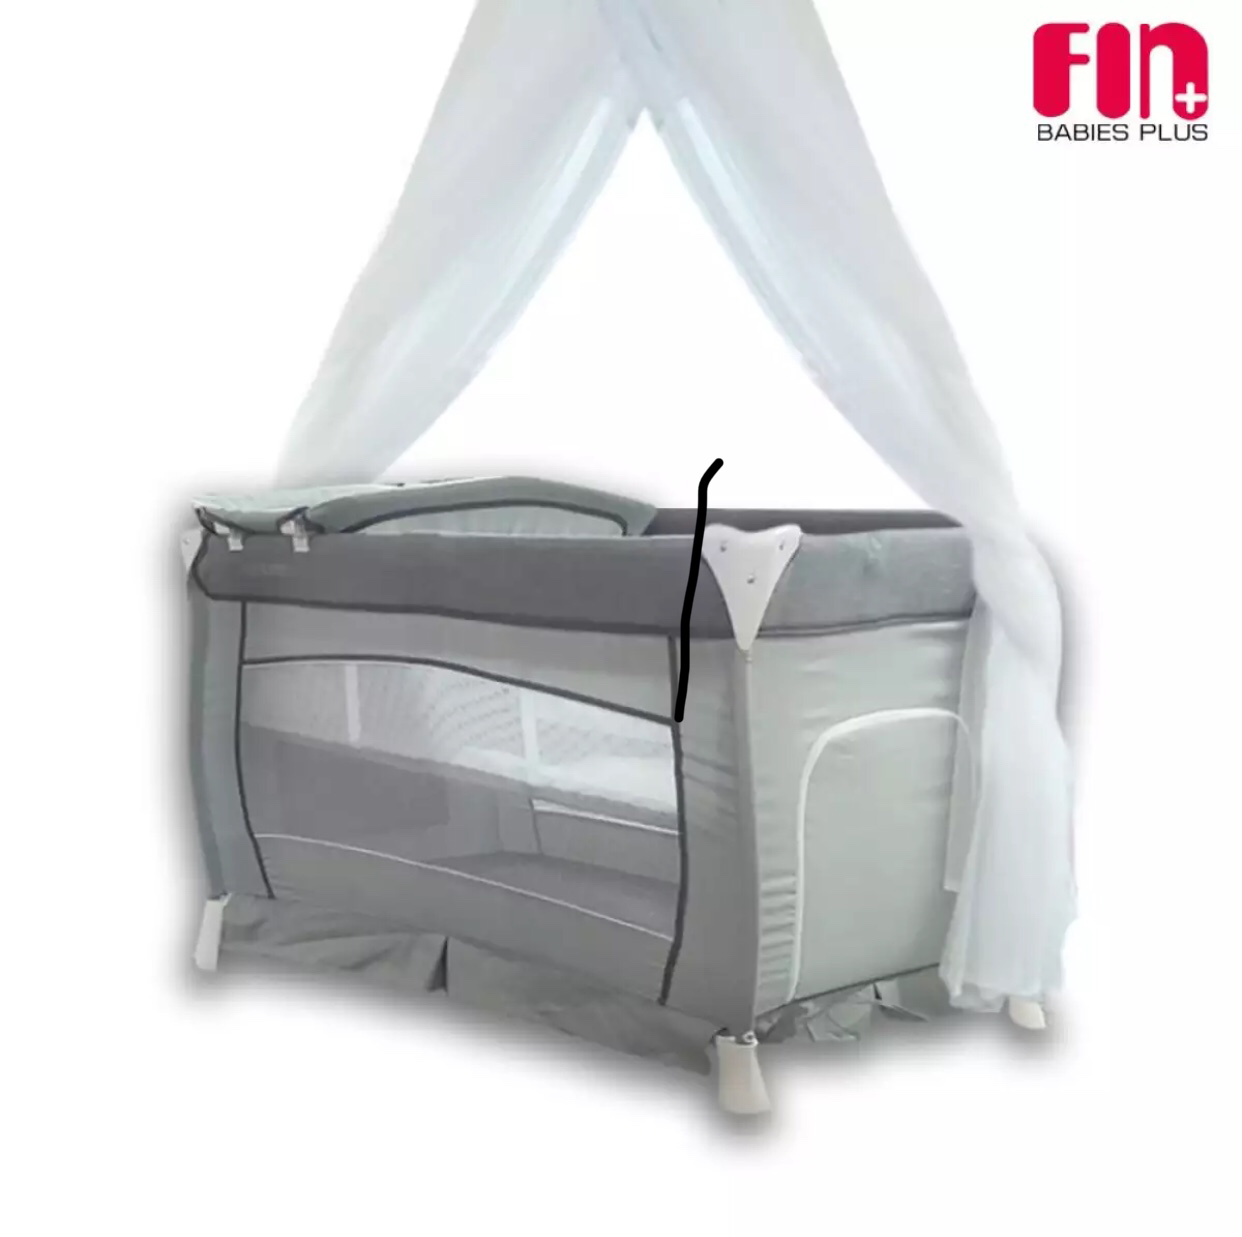 Luxury Portable Baby Cot with Linen and Mosquito Net